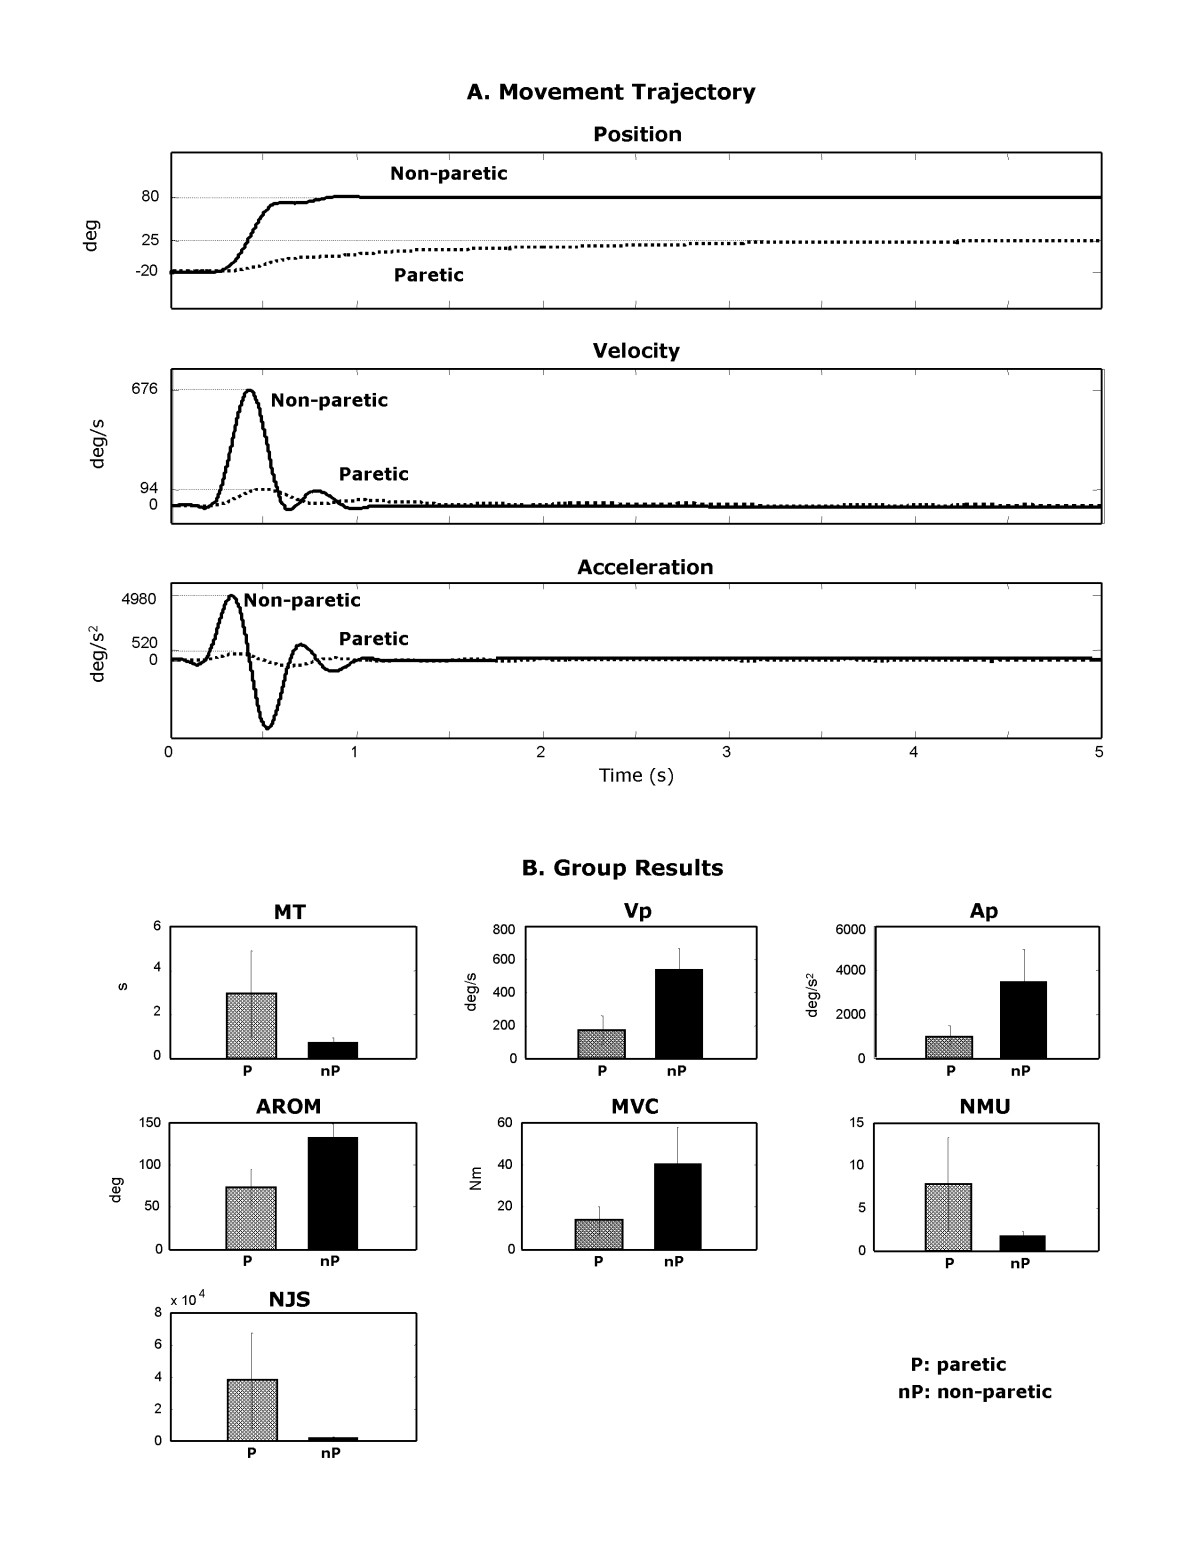 http://static-content.springer.com/image/art%3A10.1186%2F1743-0003-4-45/MediaObjects/12984_2007_Article_121_Fig3_HTML.jpg